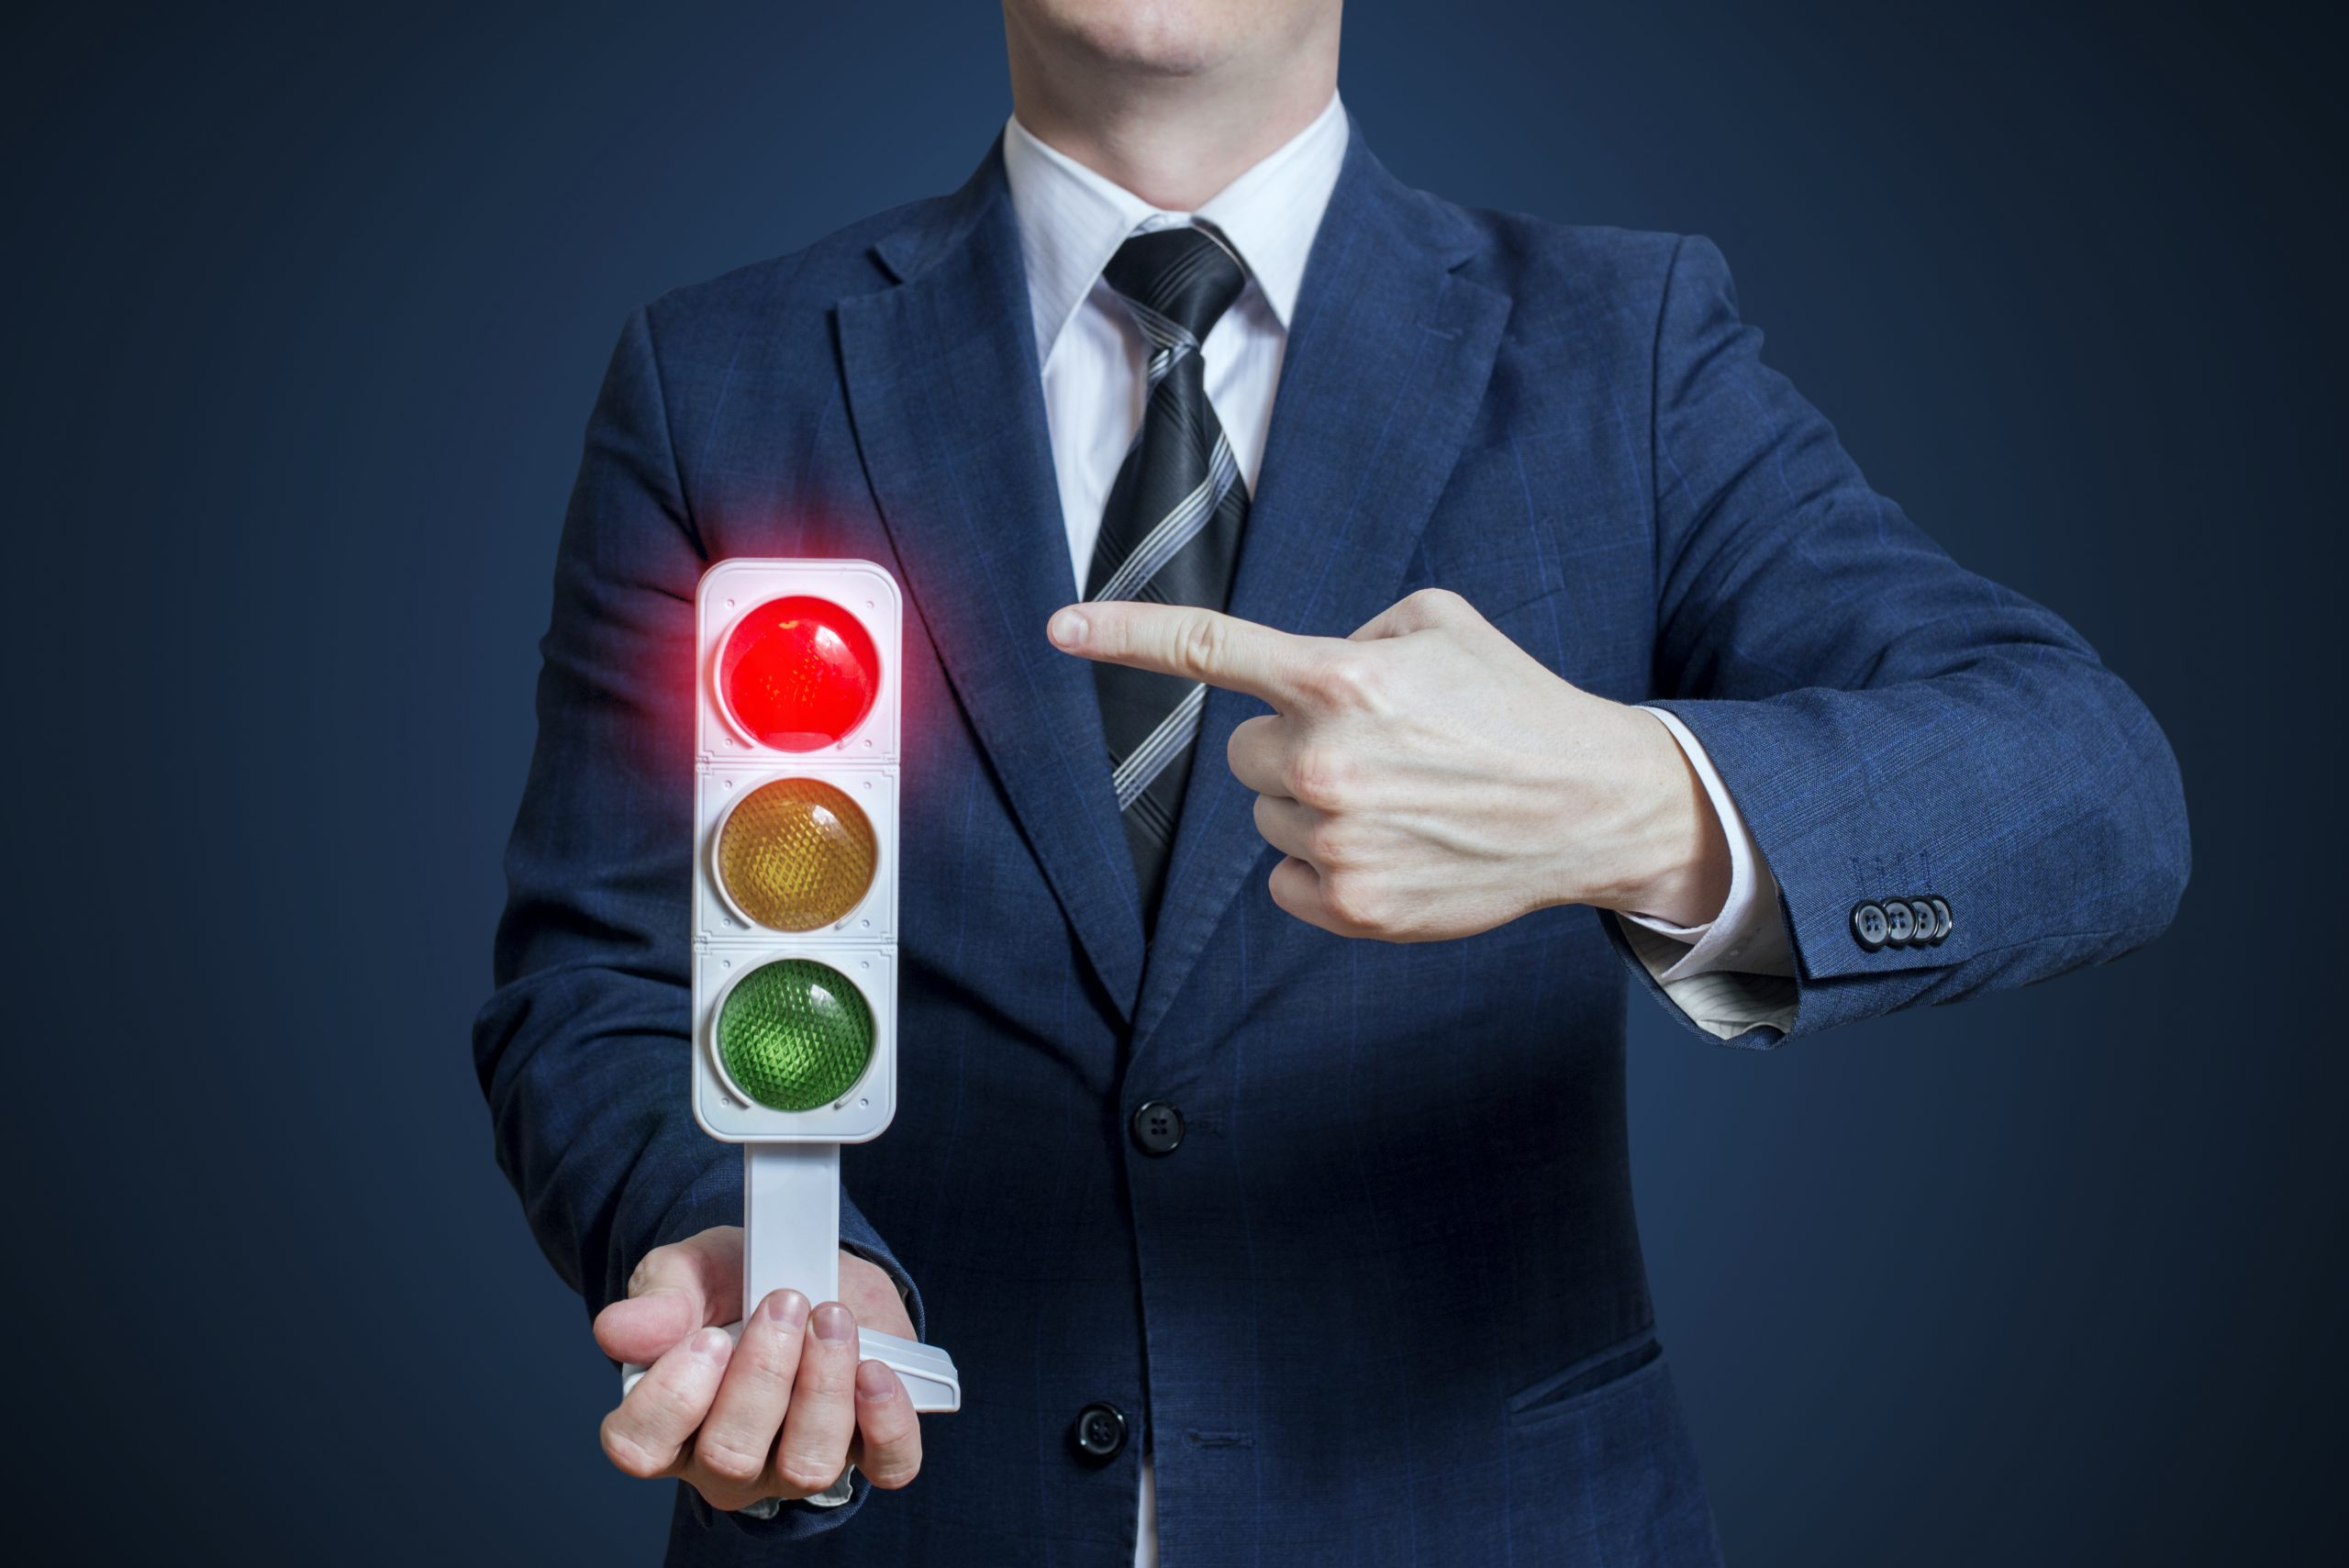 Businessman holding a traffic light with red light on. Business concept